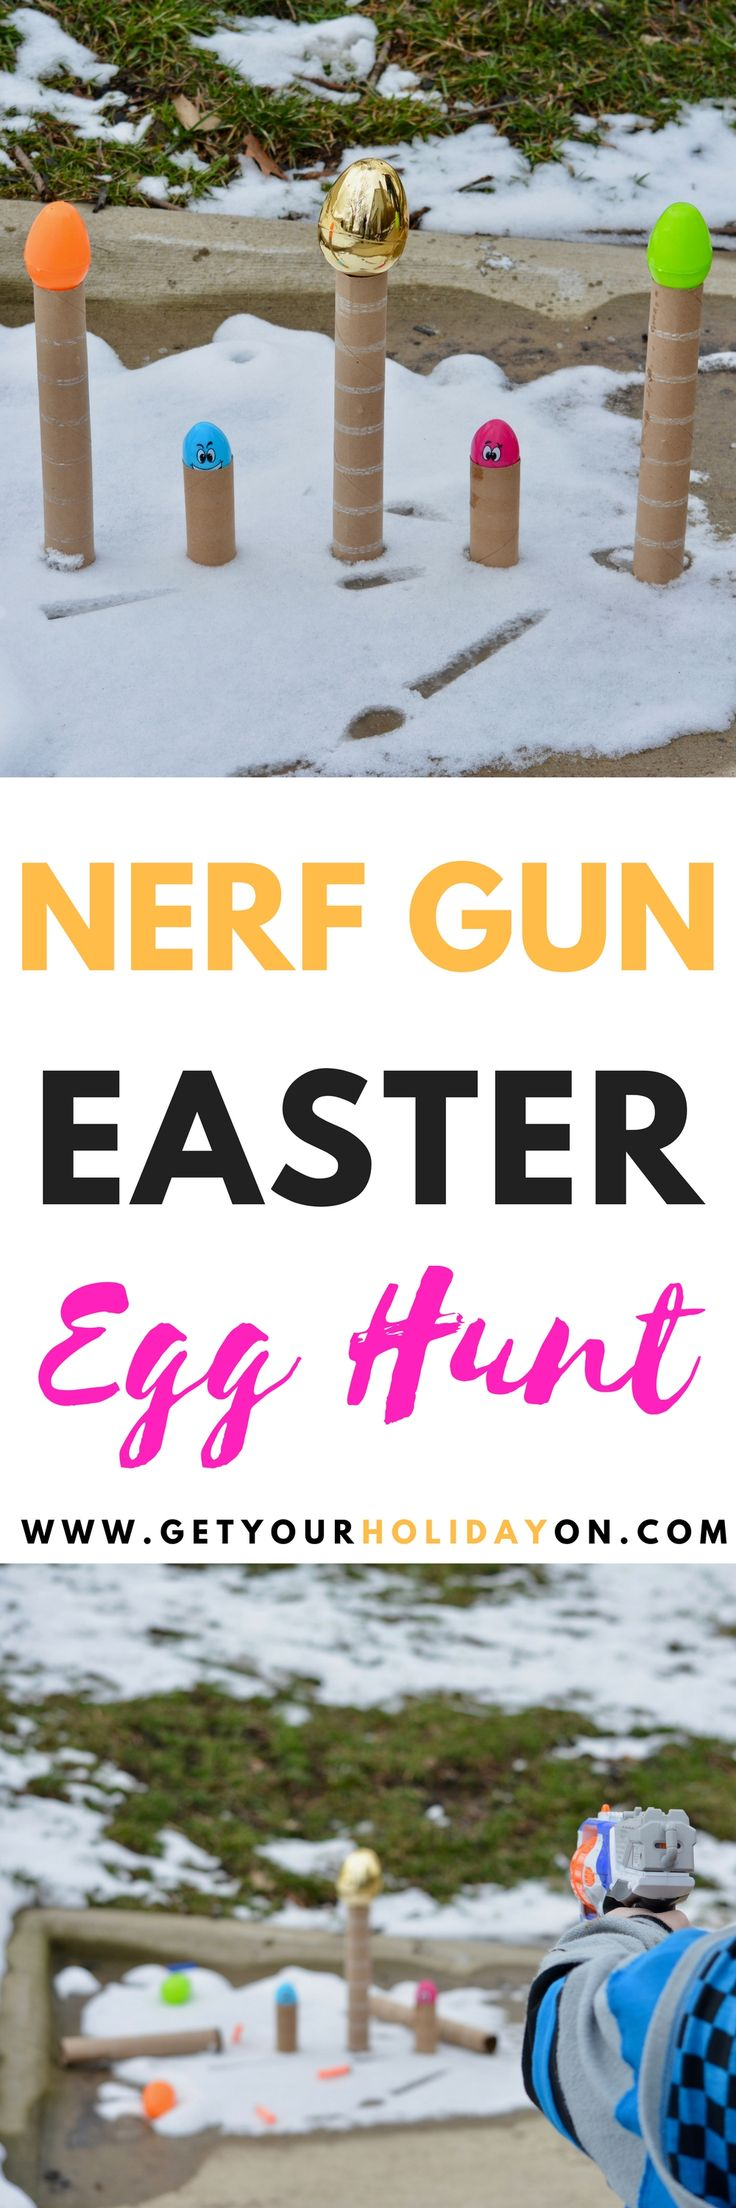 Nerf Gun Easter Egg Hunt | Point the gun at the eggs, shoot the darts, reload, and pull the trigger knocking down as many eggs as possible.#eastercrafts #momlife #easter #diyeaster